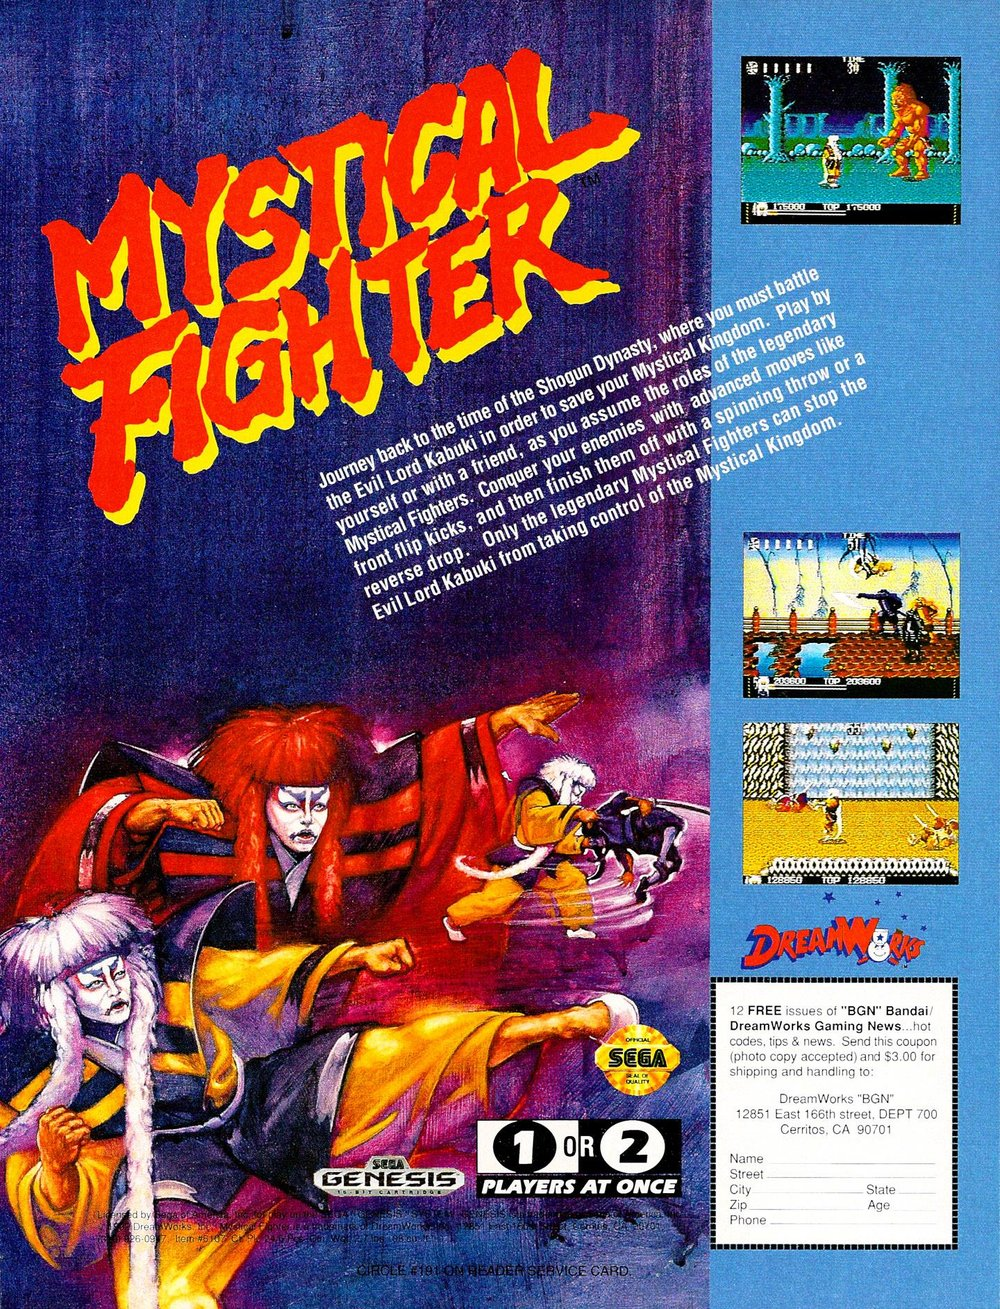 MysticalFighter MD US PrintAdvert - Mystical Fighter (KID Corp./Taito, 1991)